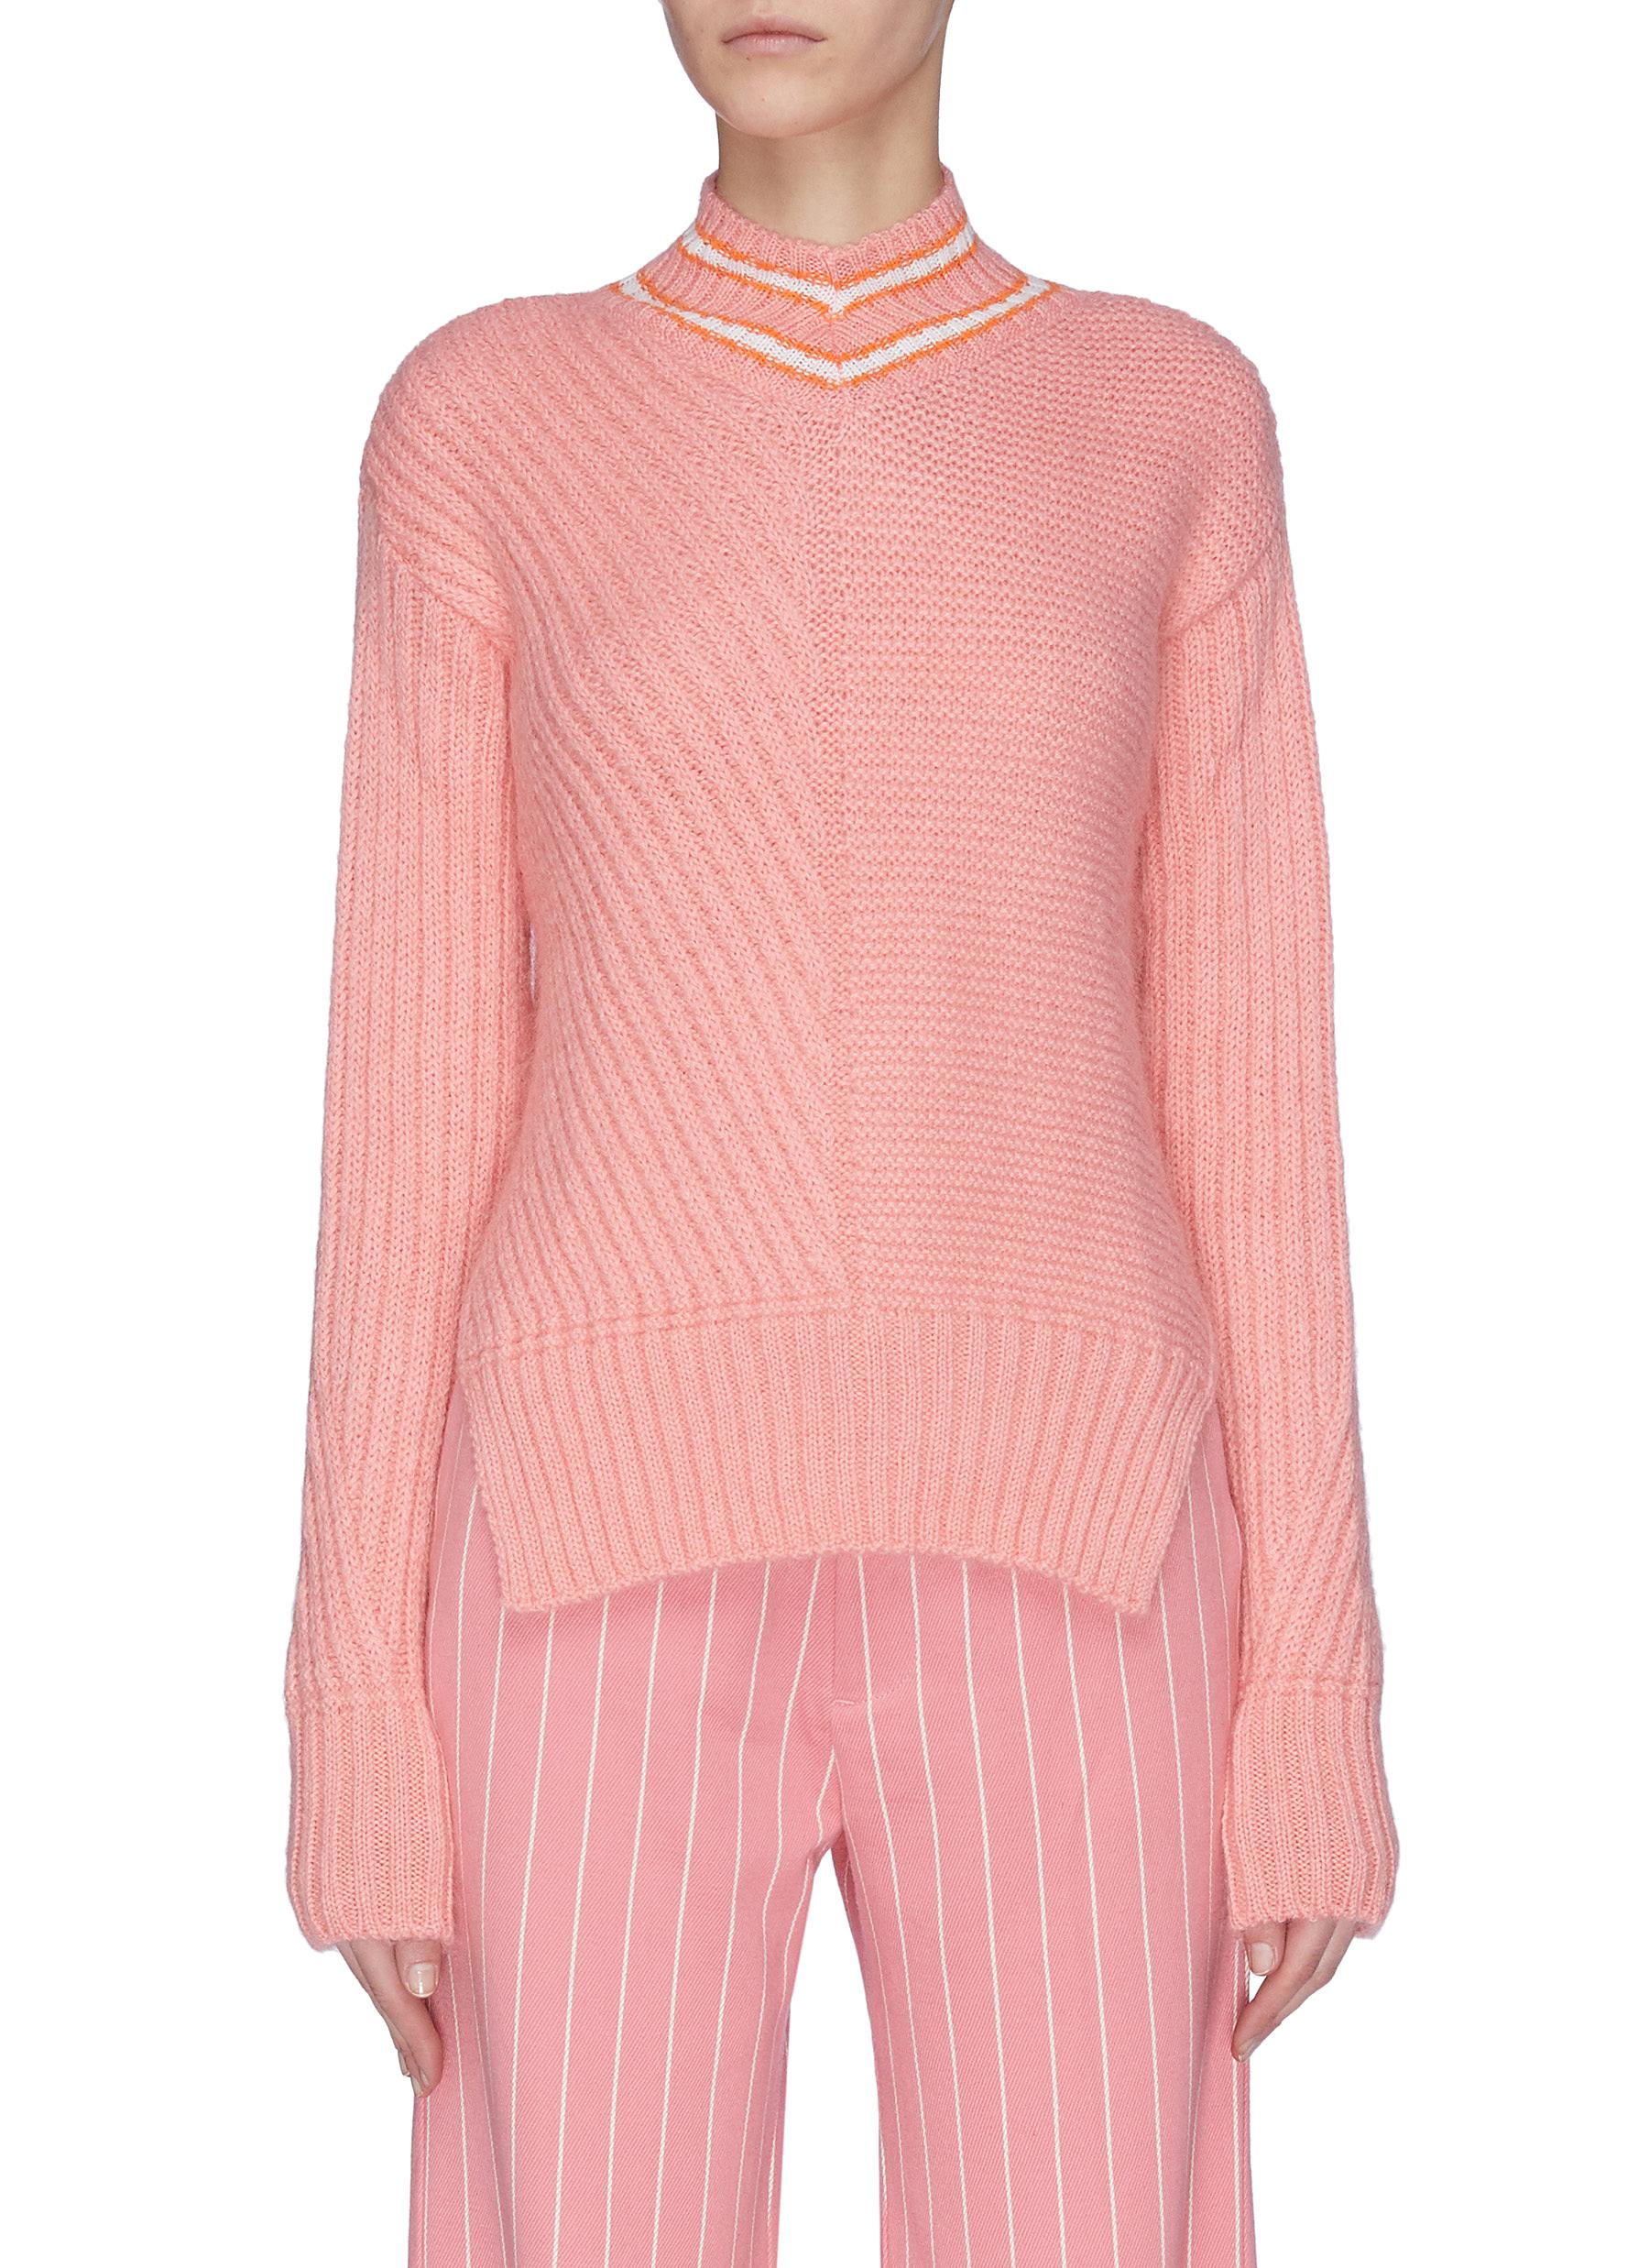 Buy Maggie Marilyn Knitwear 'A Stitch in Time' contrast stitch stripe collar sweater